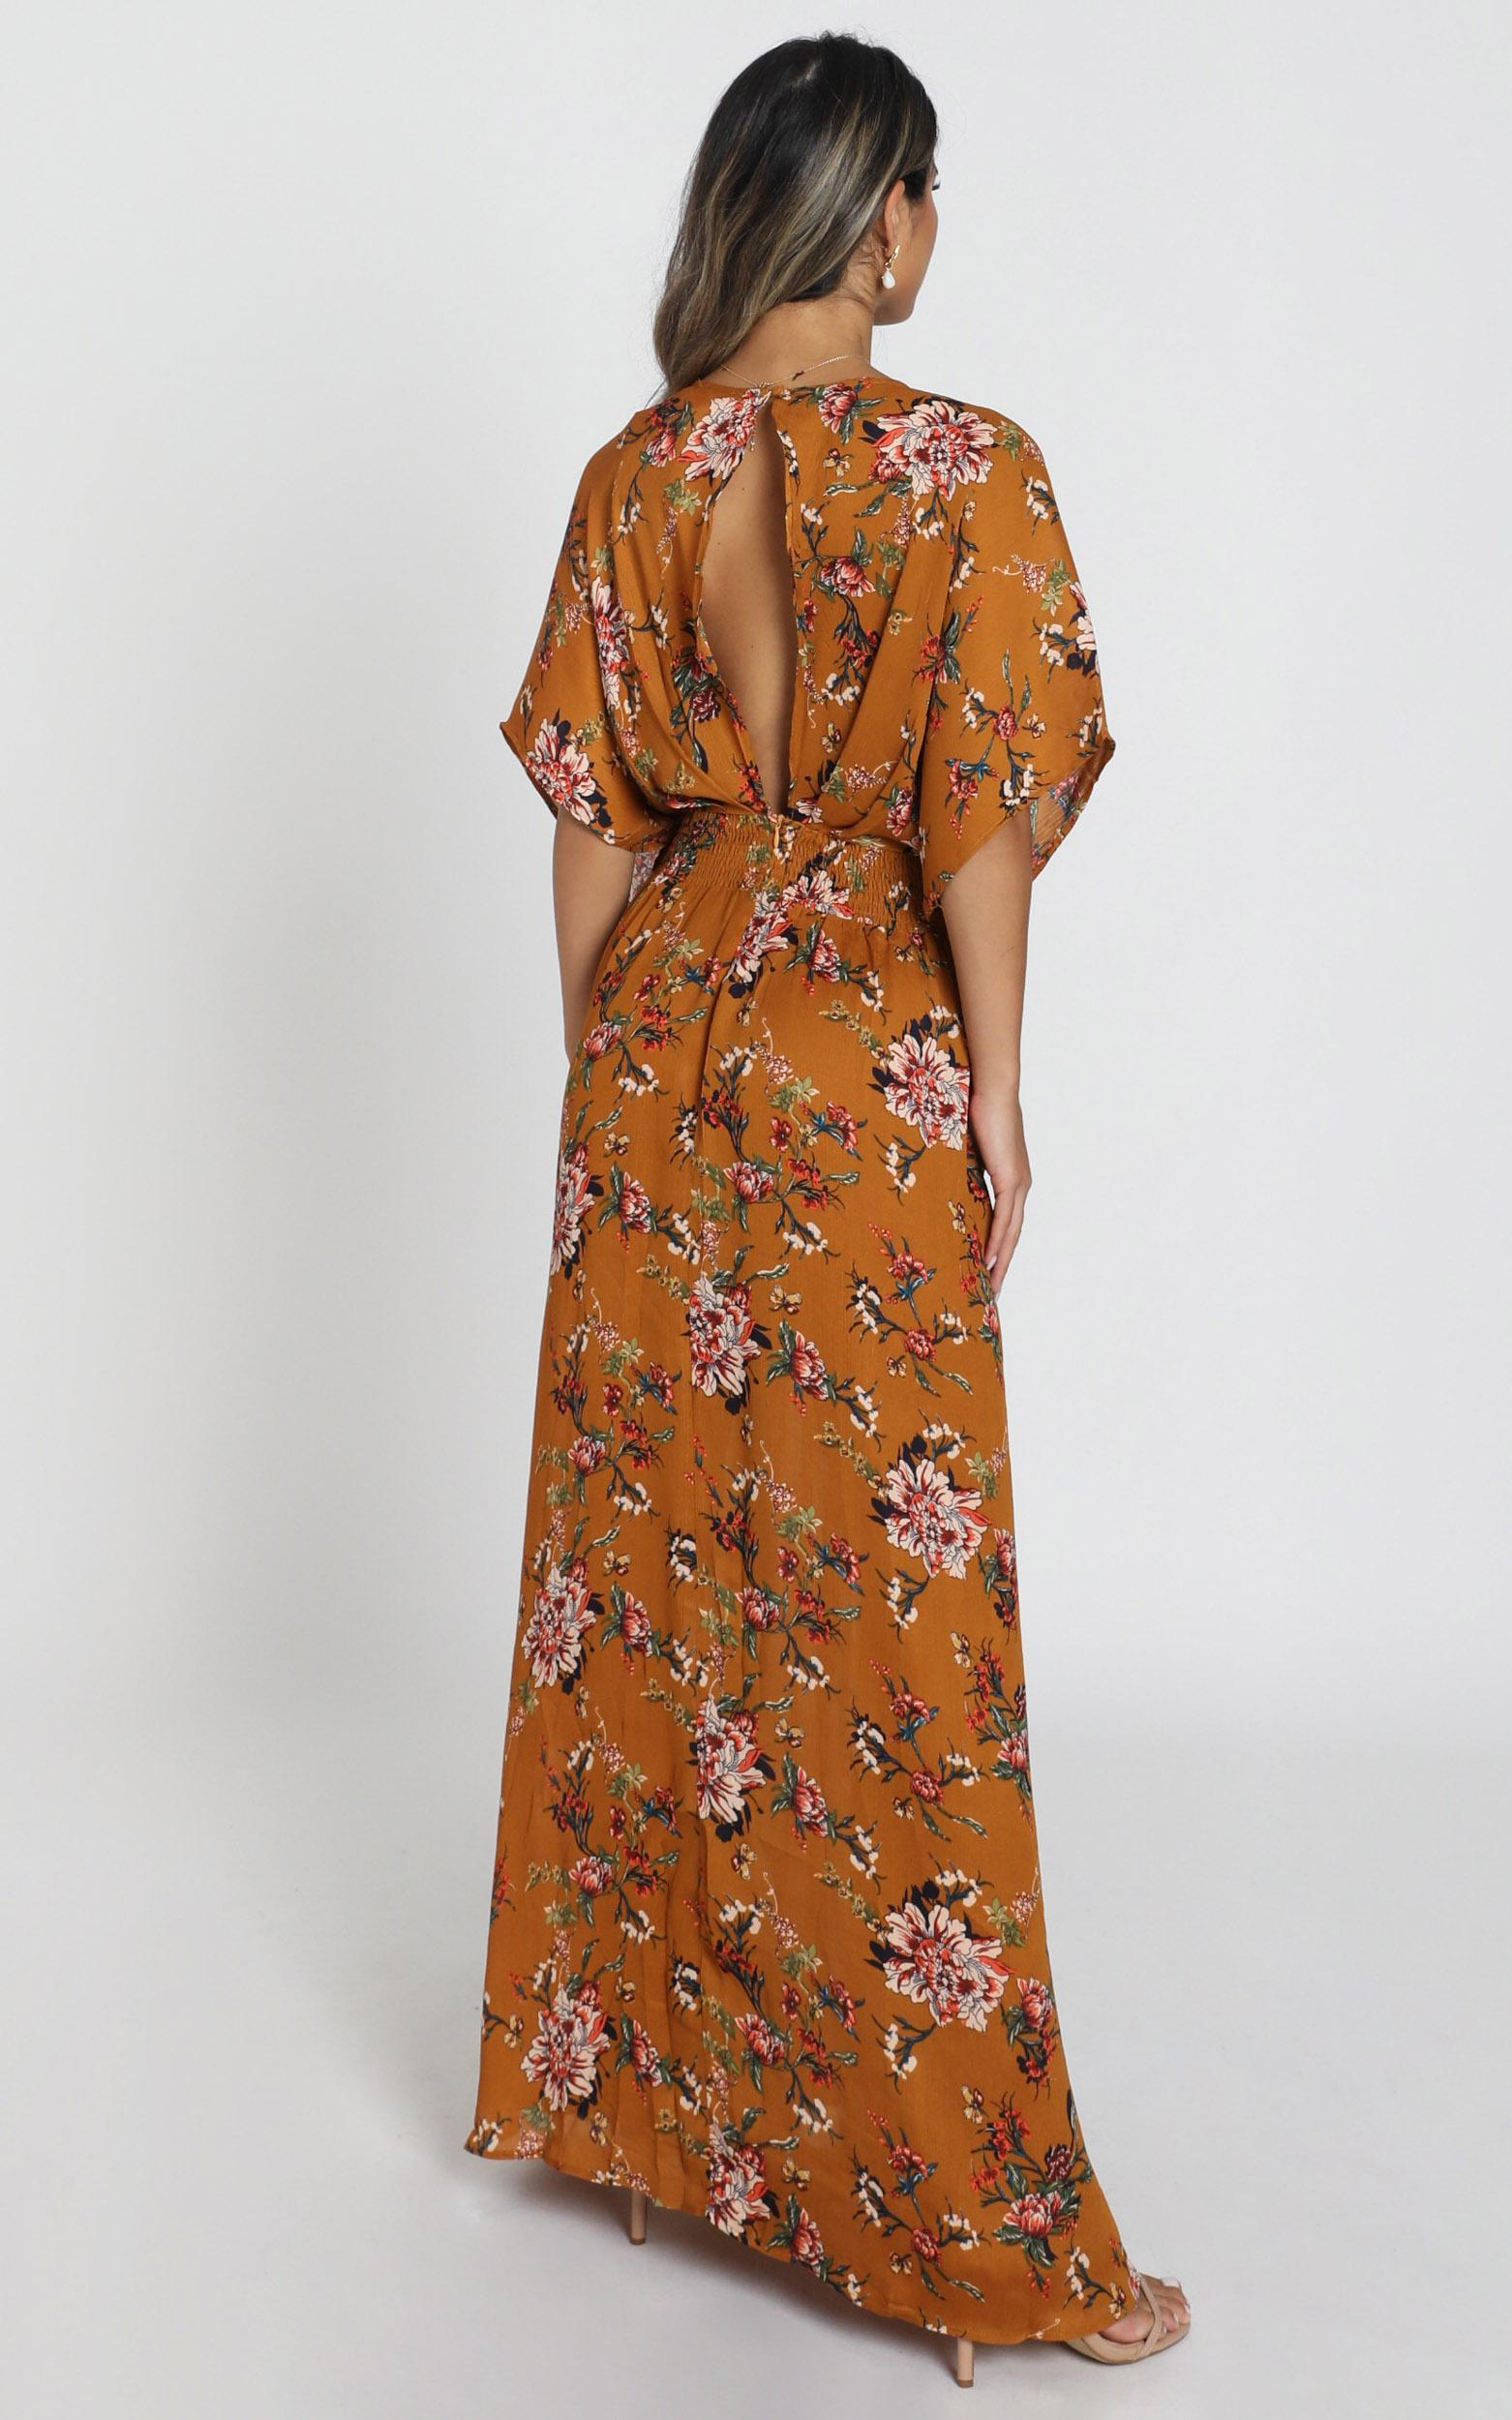 Vacay Ready Maxi Dress In Mustard Floral - 4 (XXS), YEL1, hi-res image number null